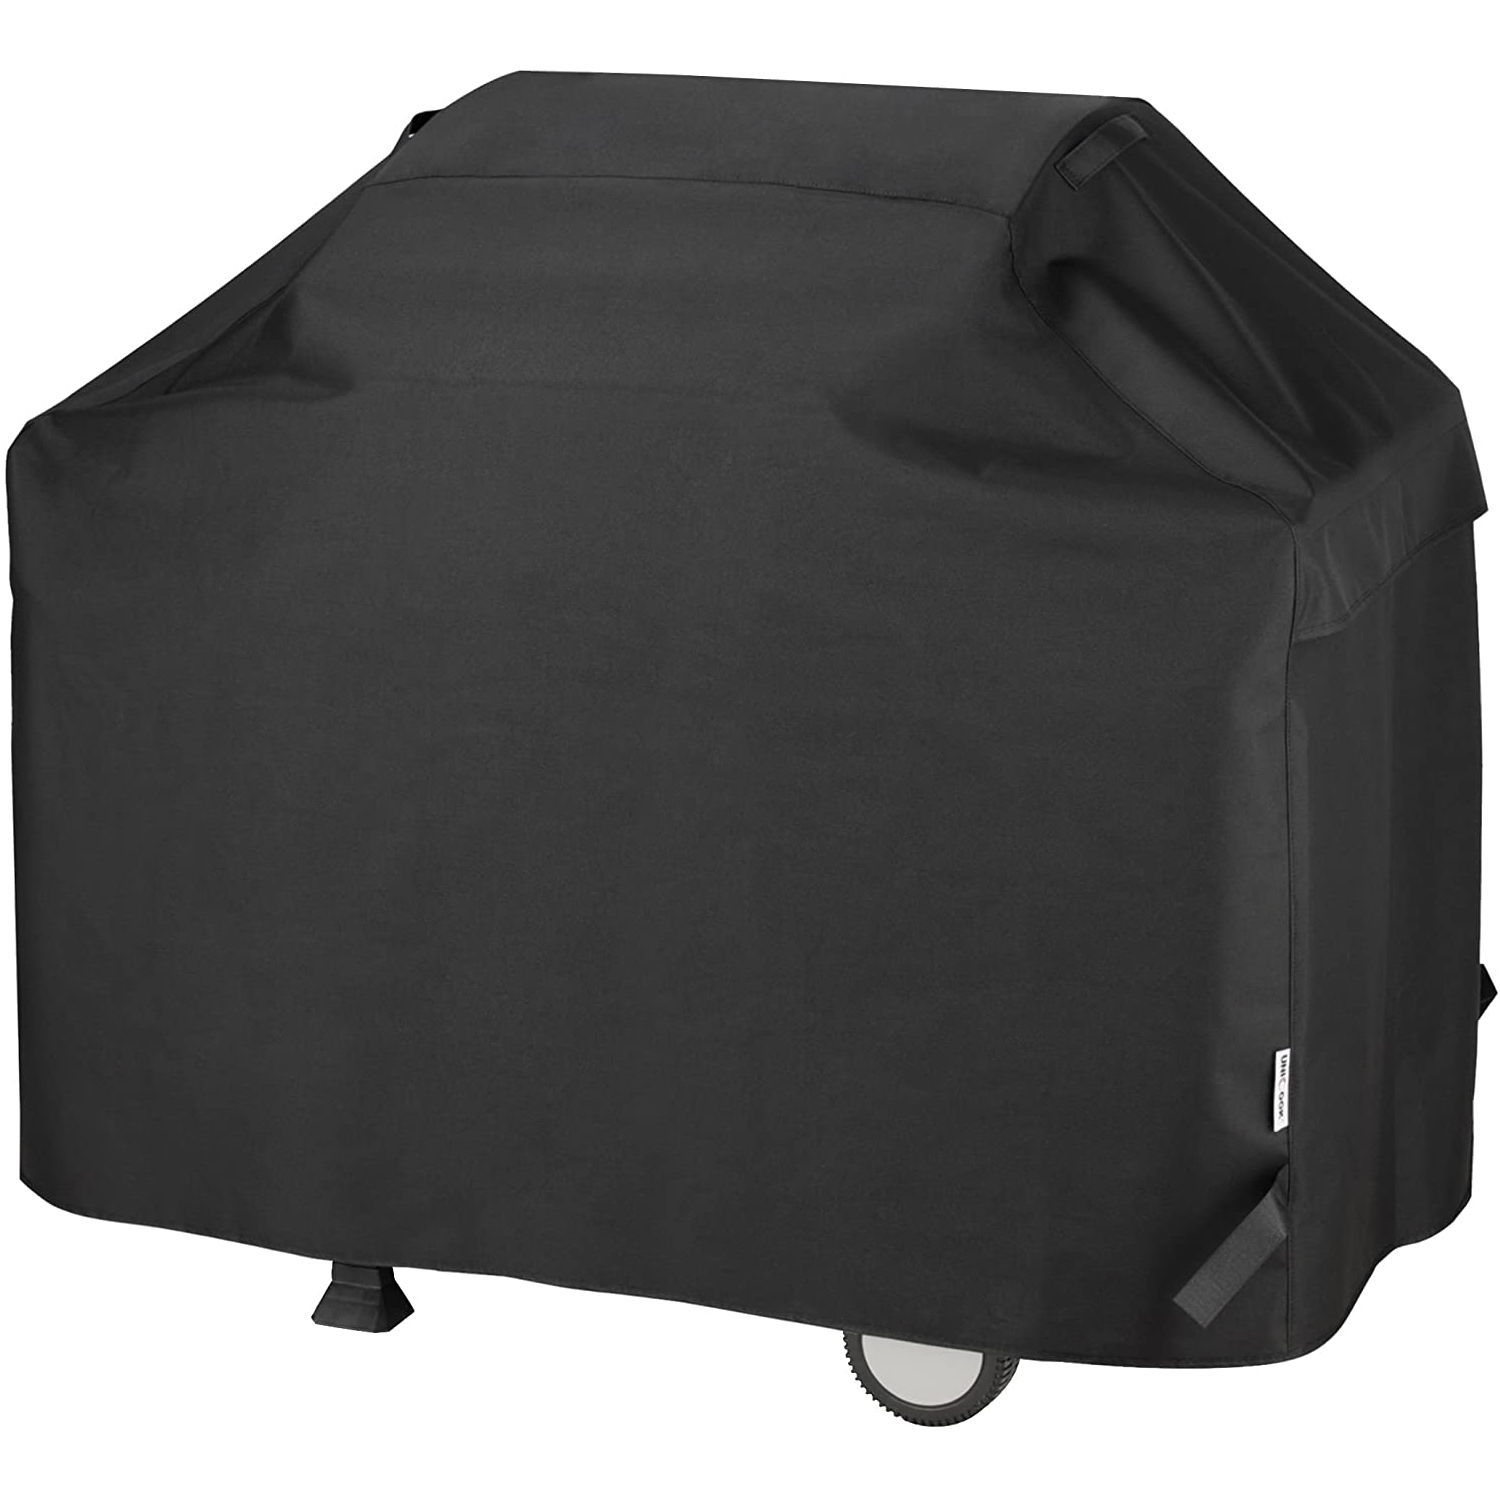 Grill Cover Waterproof Weather Resistant